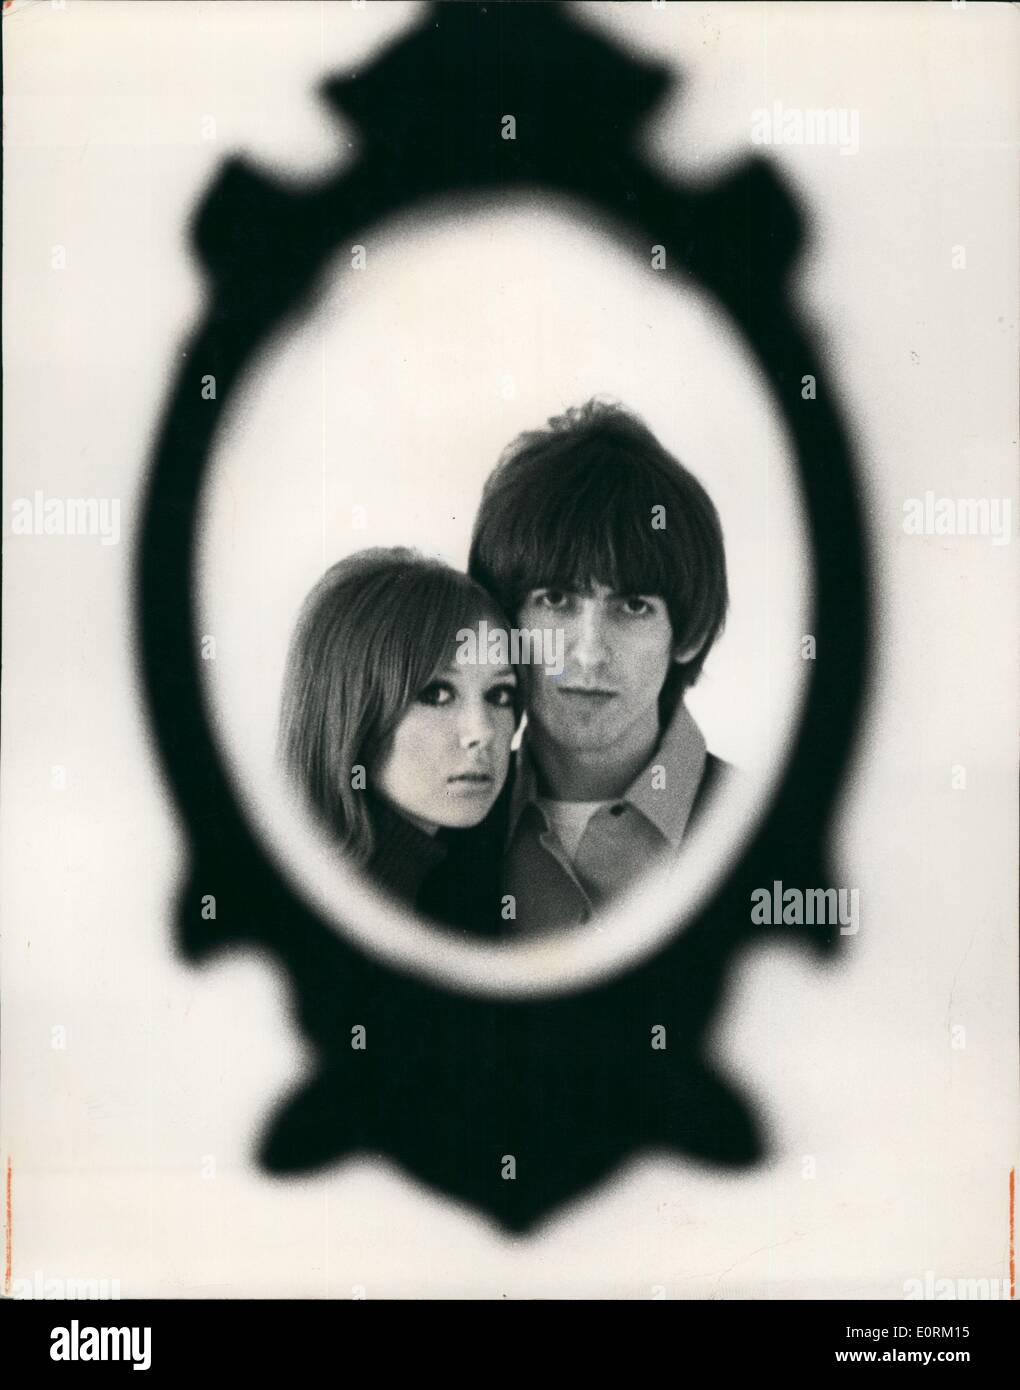 Jan 1, 1960 - Exclusive Pre-Wedding Pictures Of Beatle George Harrison And Pattie Boyd Whose Wedding Takes Place Today. - Stock Image